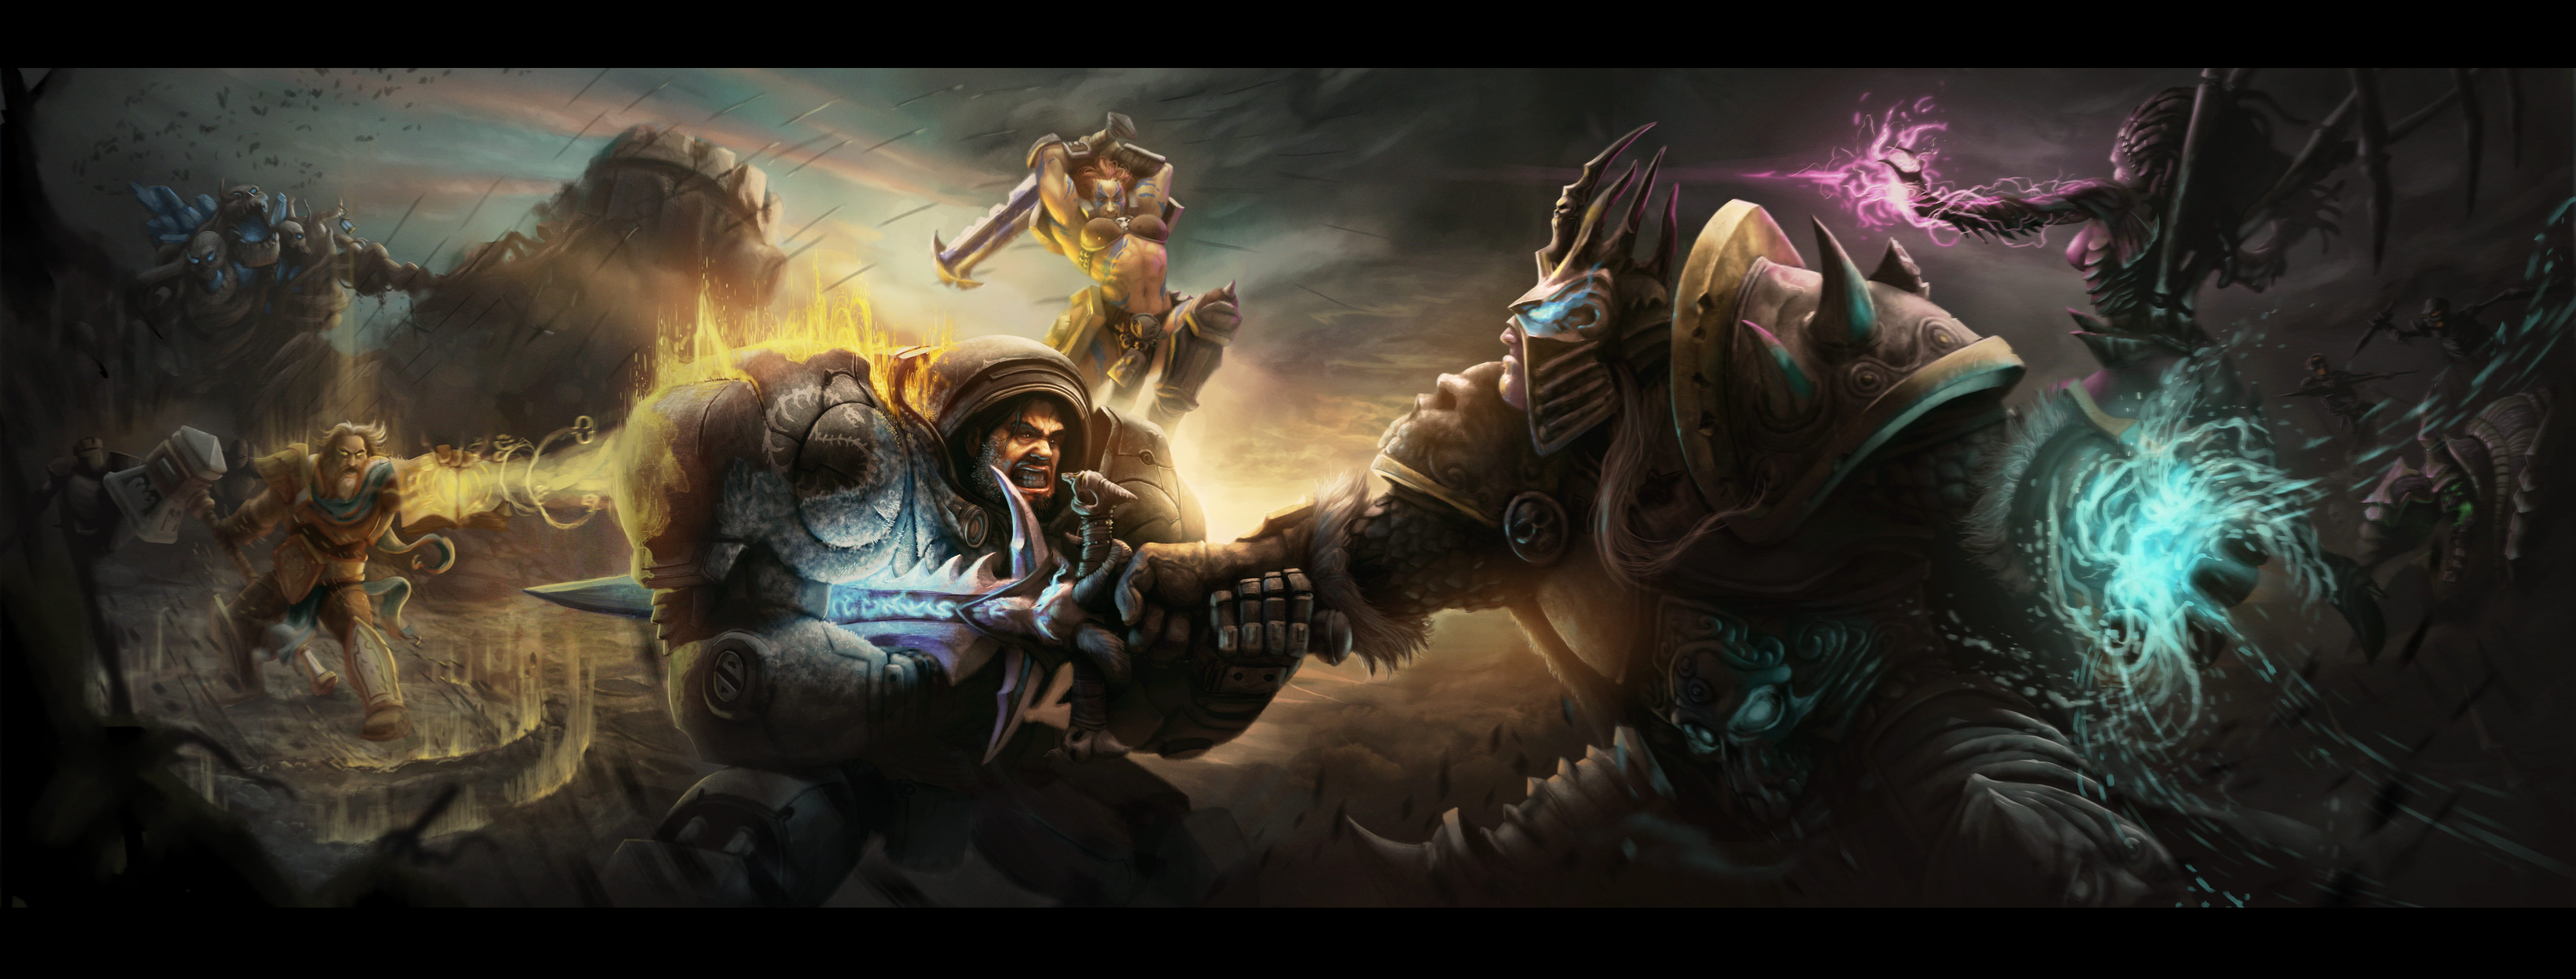 heroes of the storm battle for the haunted mines by splinterD